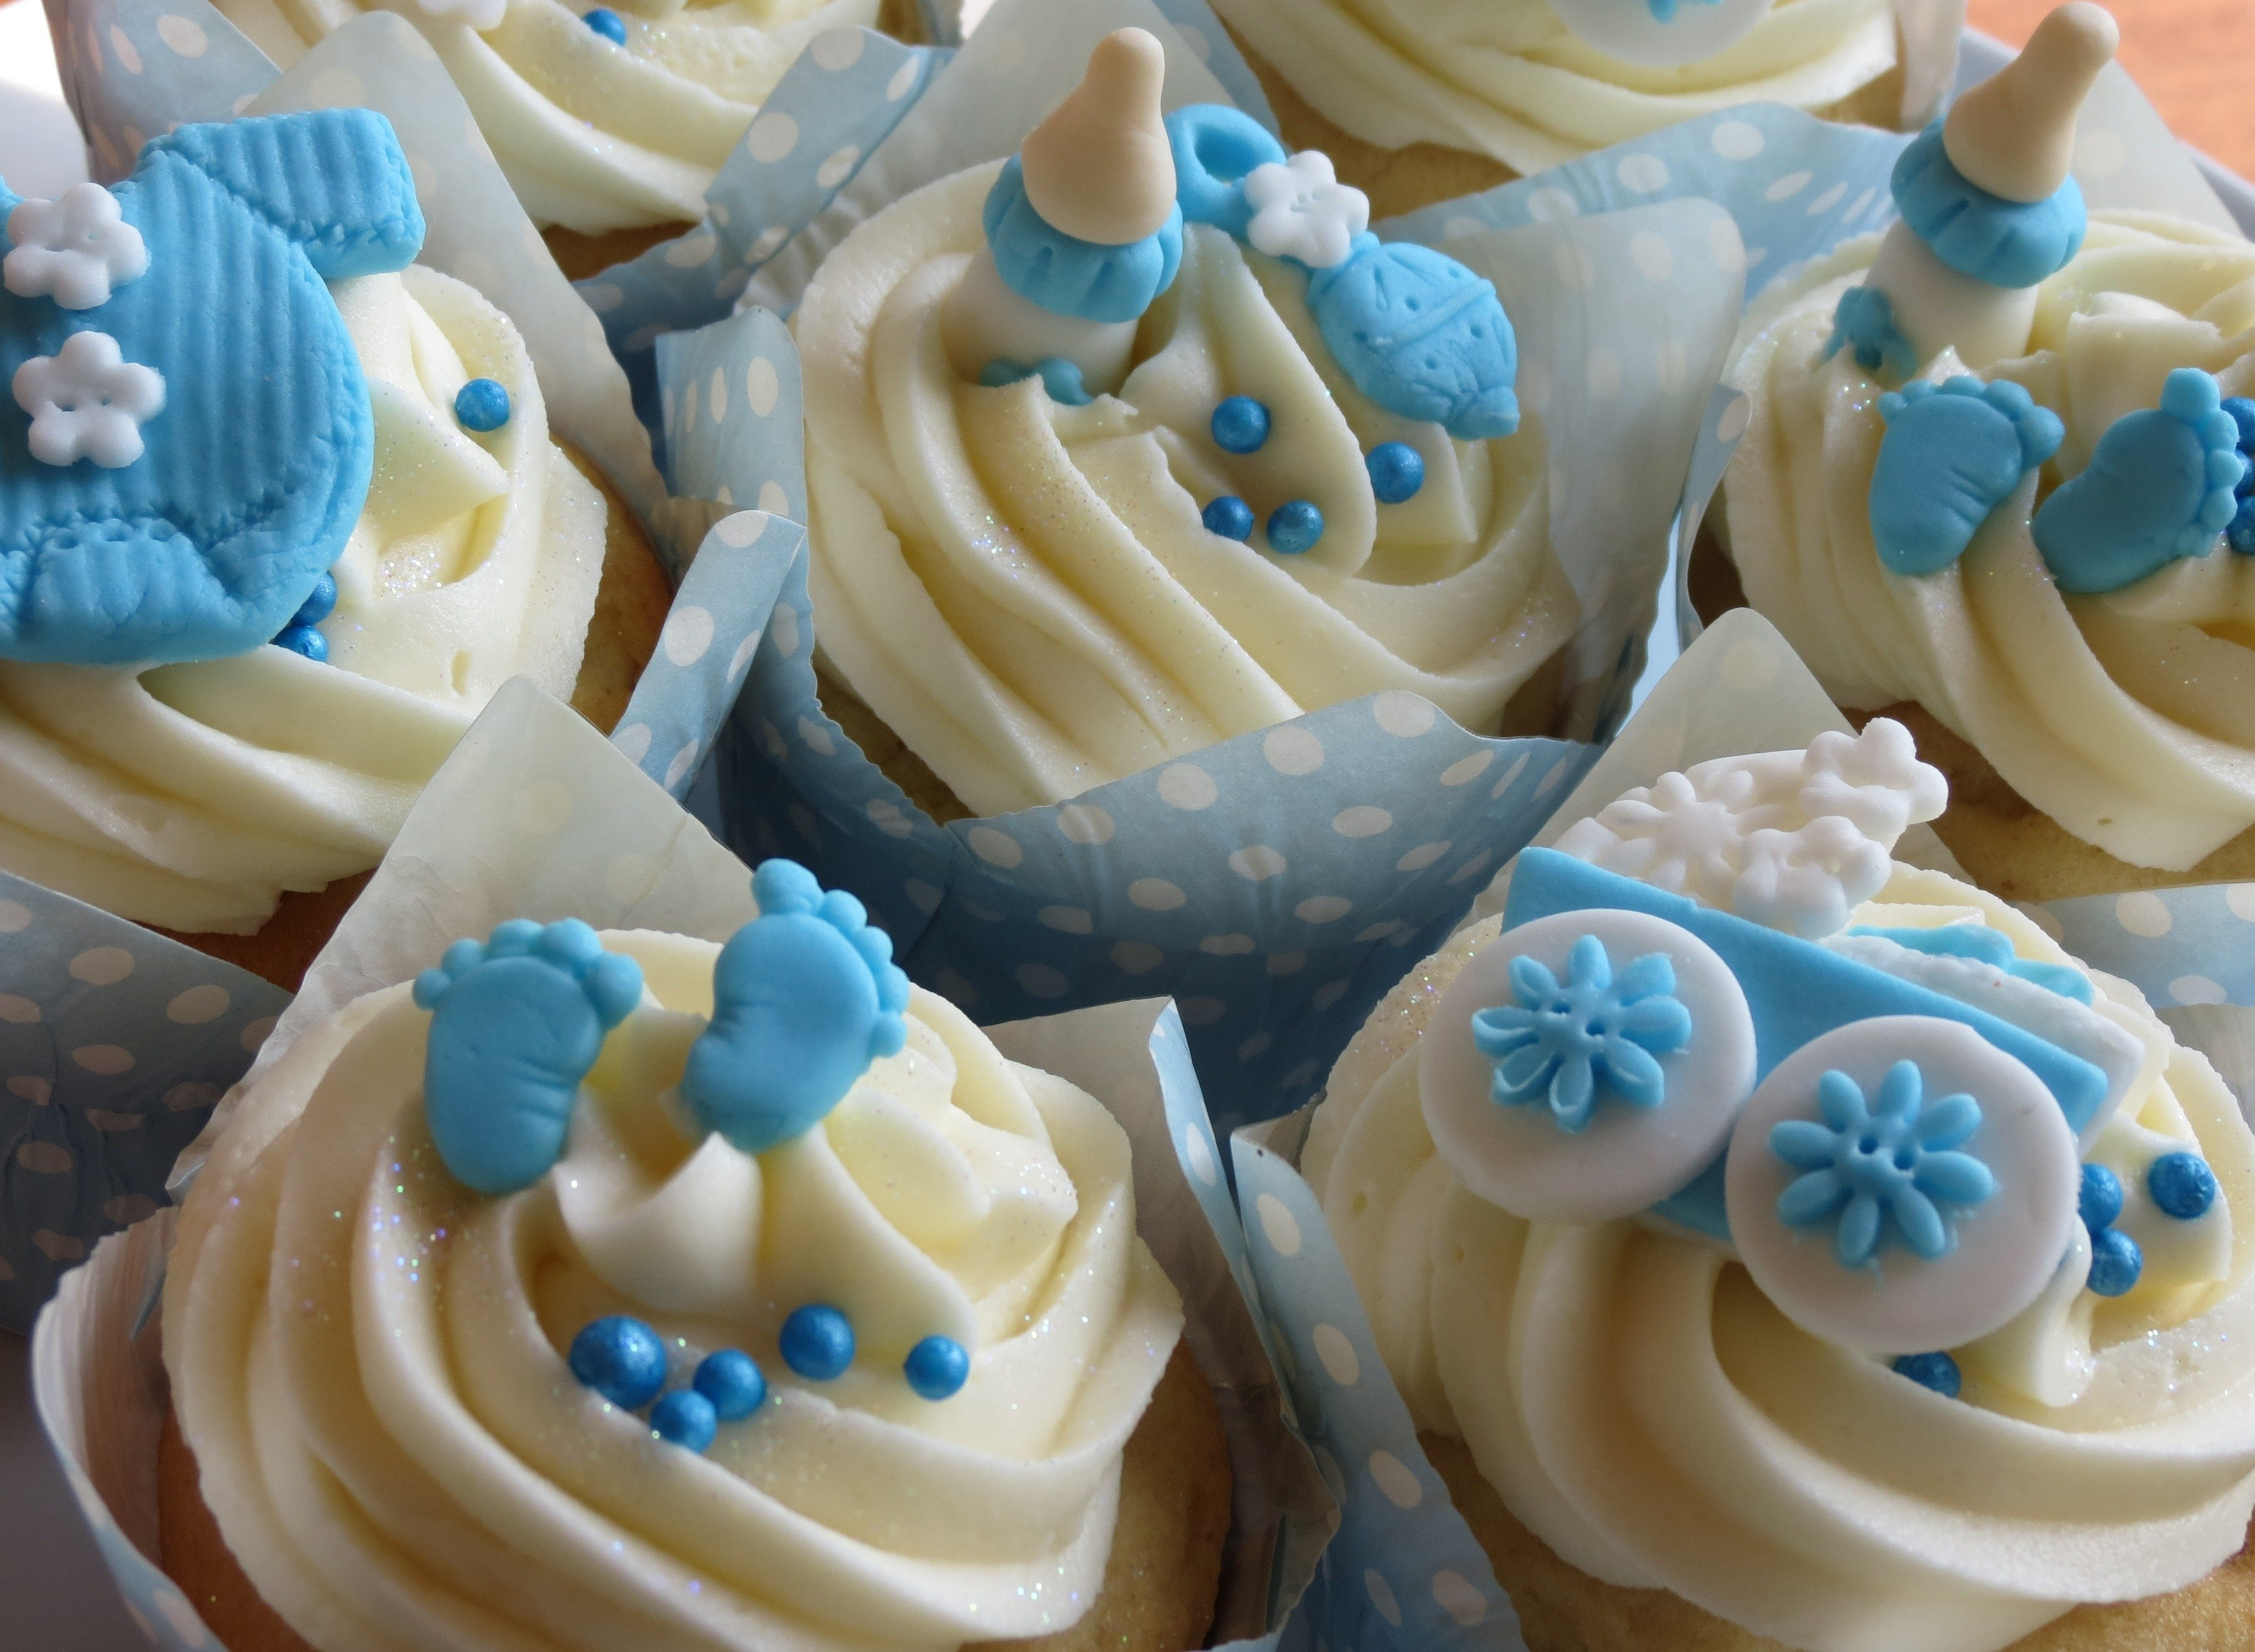 10 Trendy Baby Shower Cupcake Ideas For A Boy boy baby shower cupcake ideas omega center ideas for baby 1